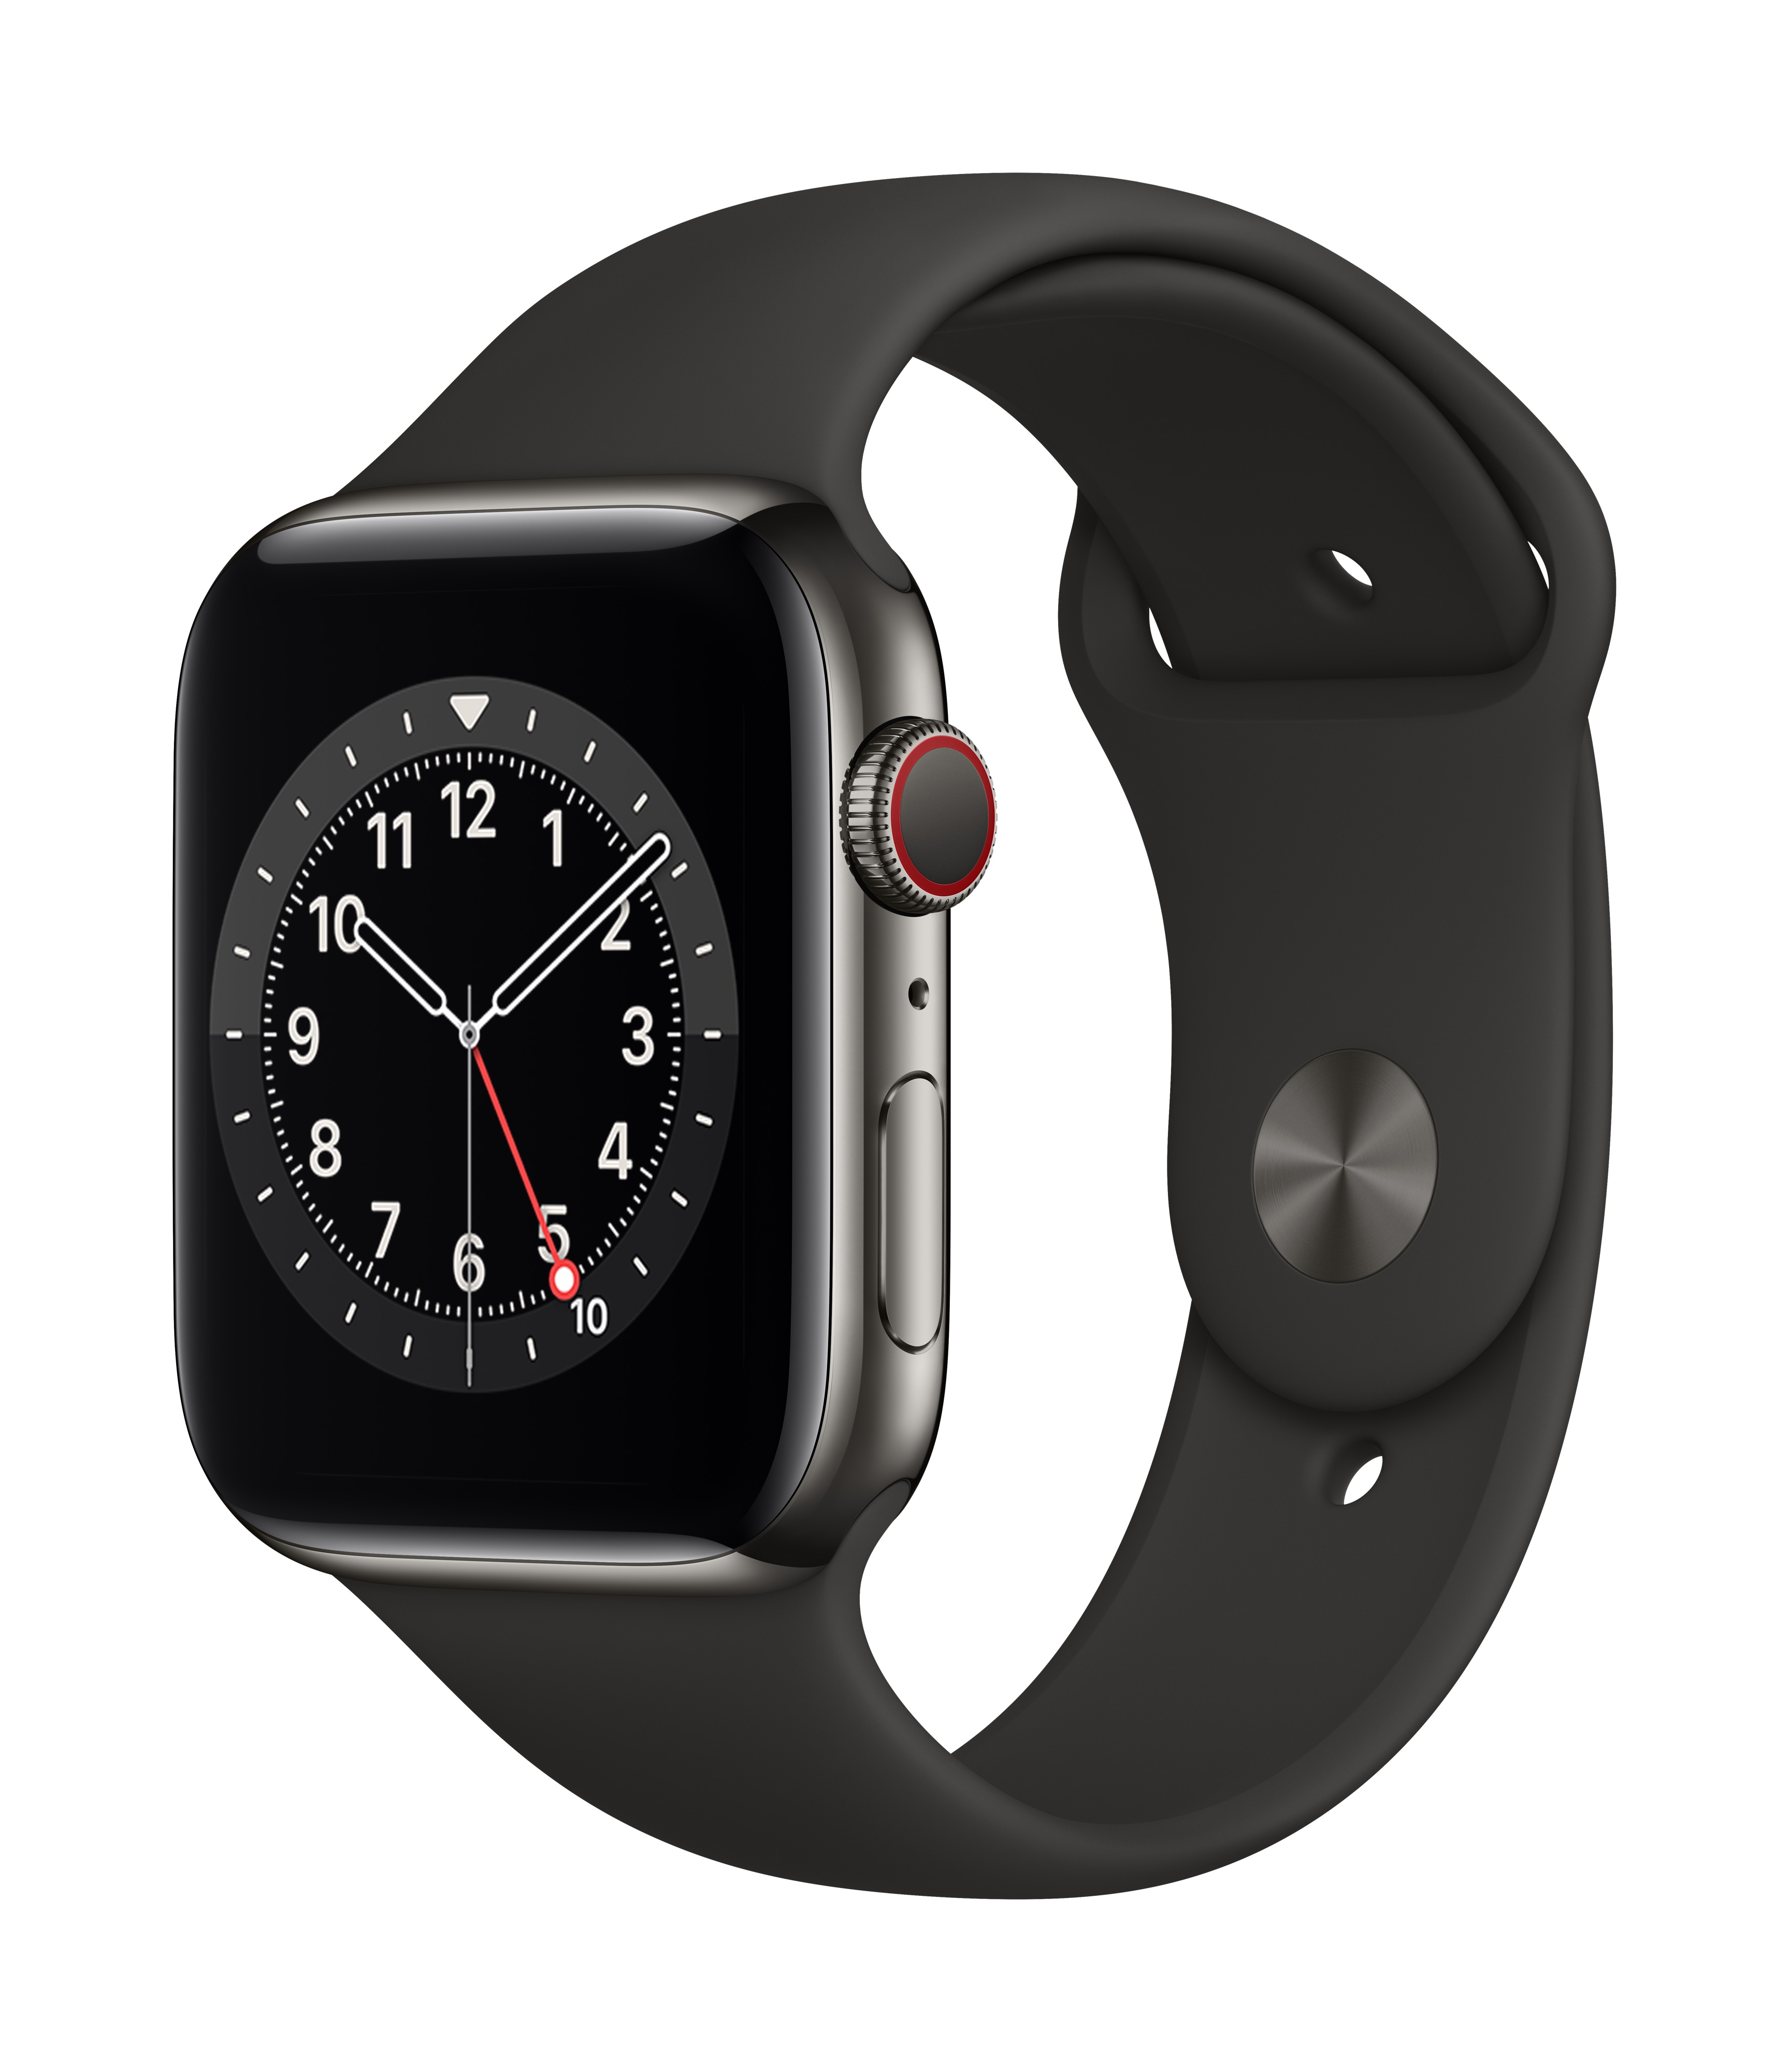 Apple_Watch_Series_6_Cellular_44mm_Graphite_Stainless_Steel_Black_Sport_Band_34R_Screen__USEN